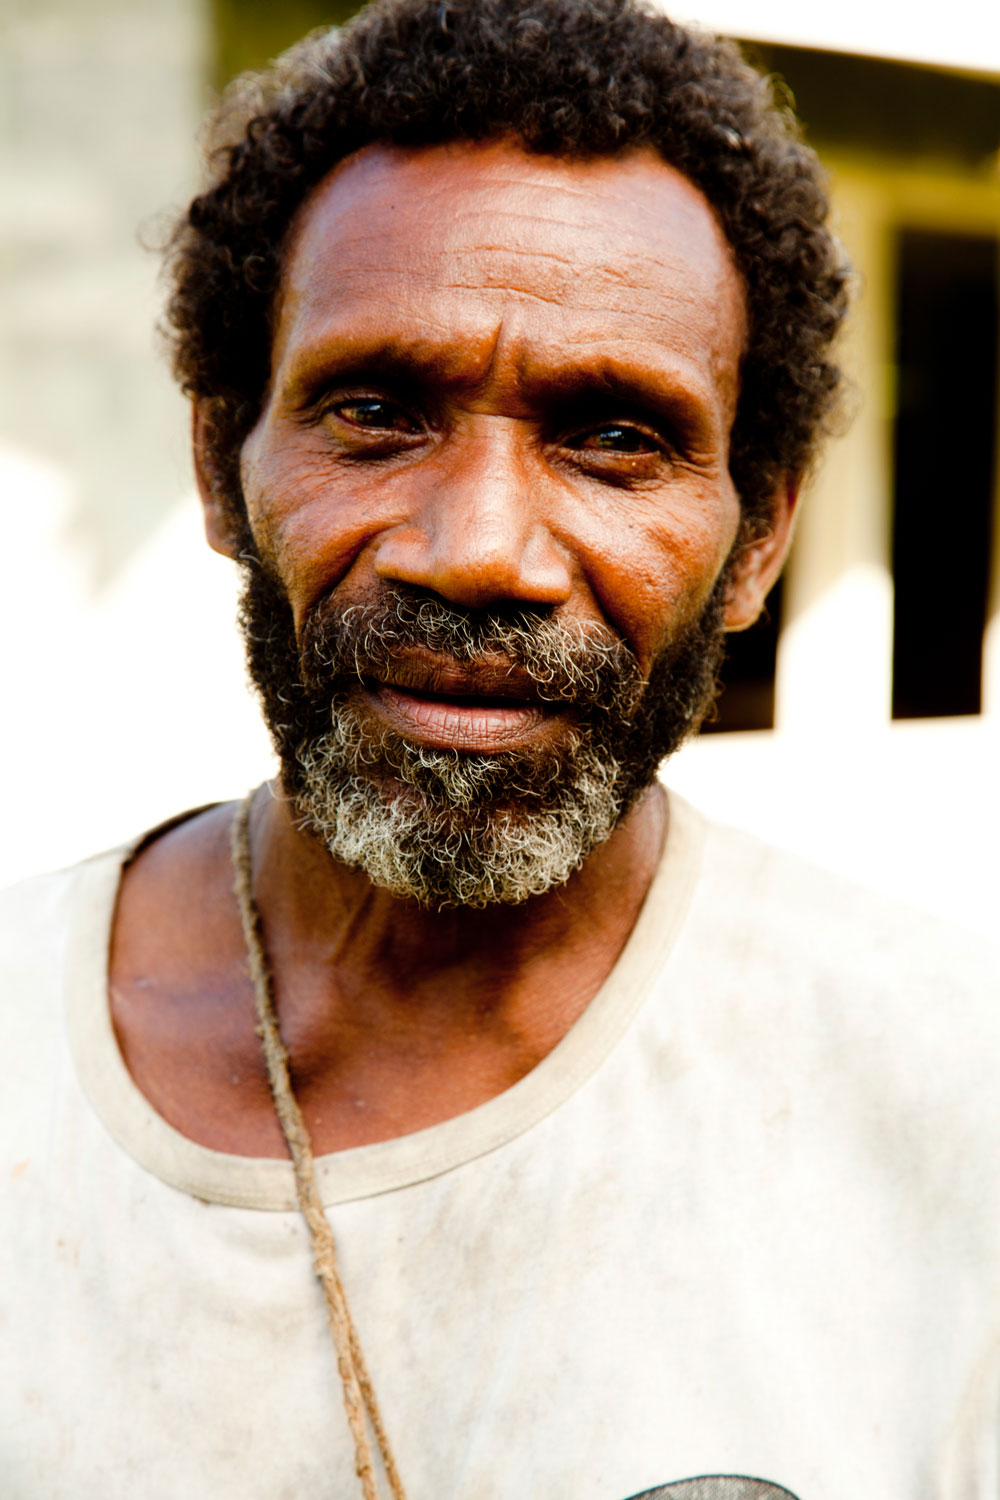 Village_Portraits_002